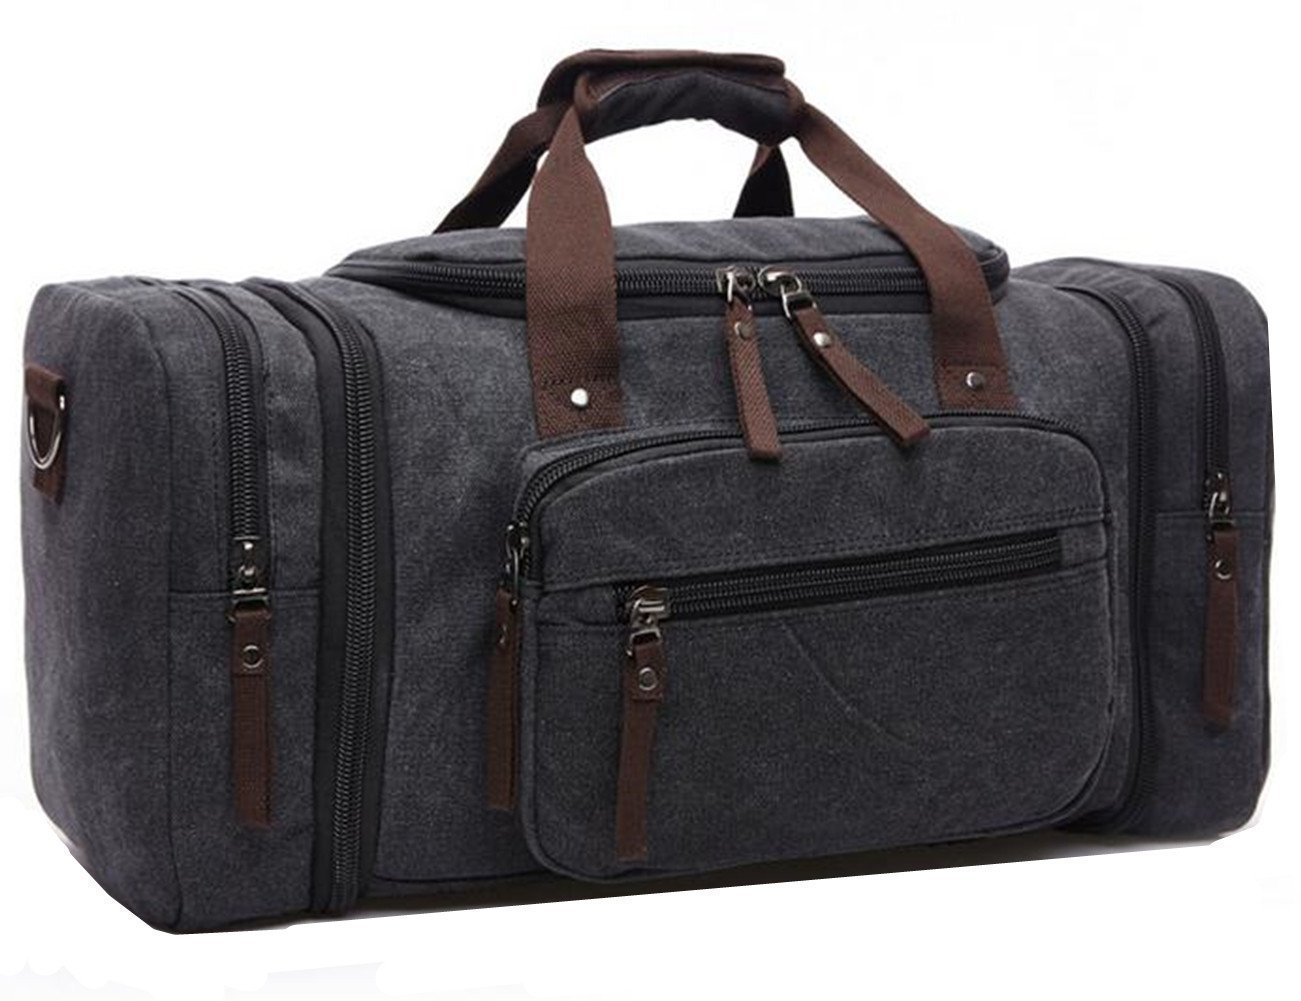 Canvas Duffel bag Overnight Travel Bags Travel Duffel Bag for Men Canvas Leather gym Bag women